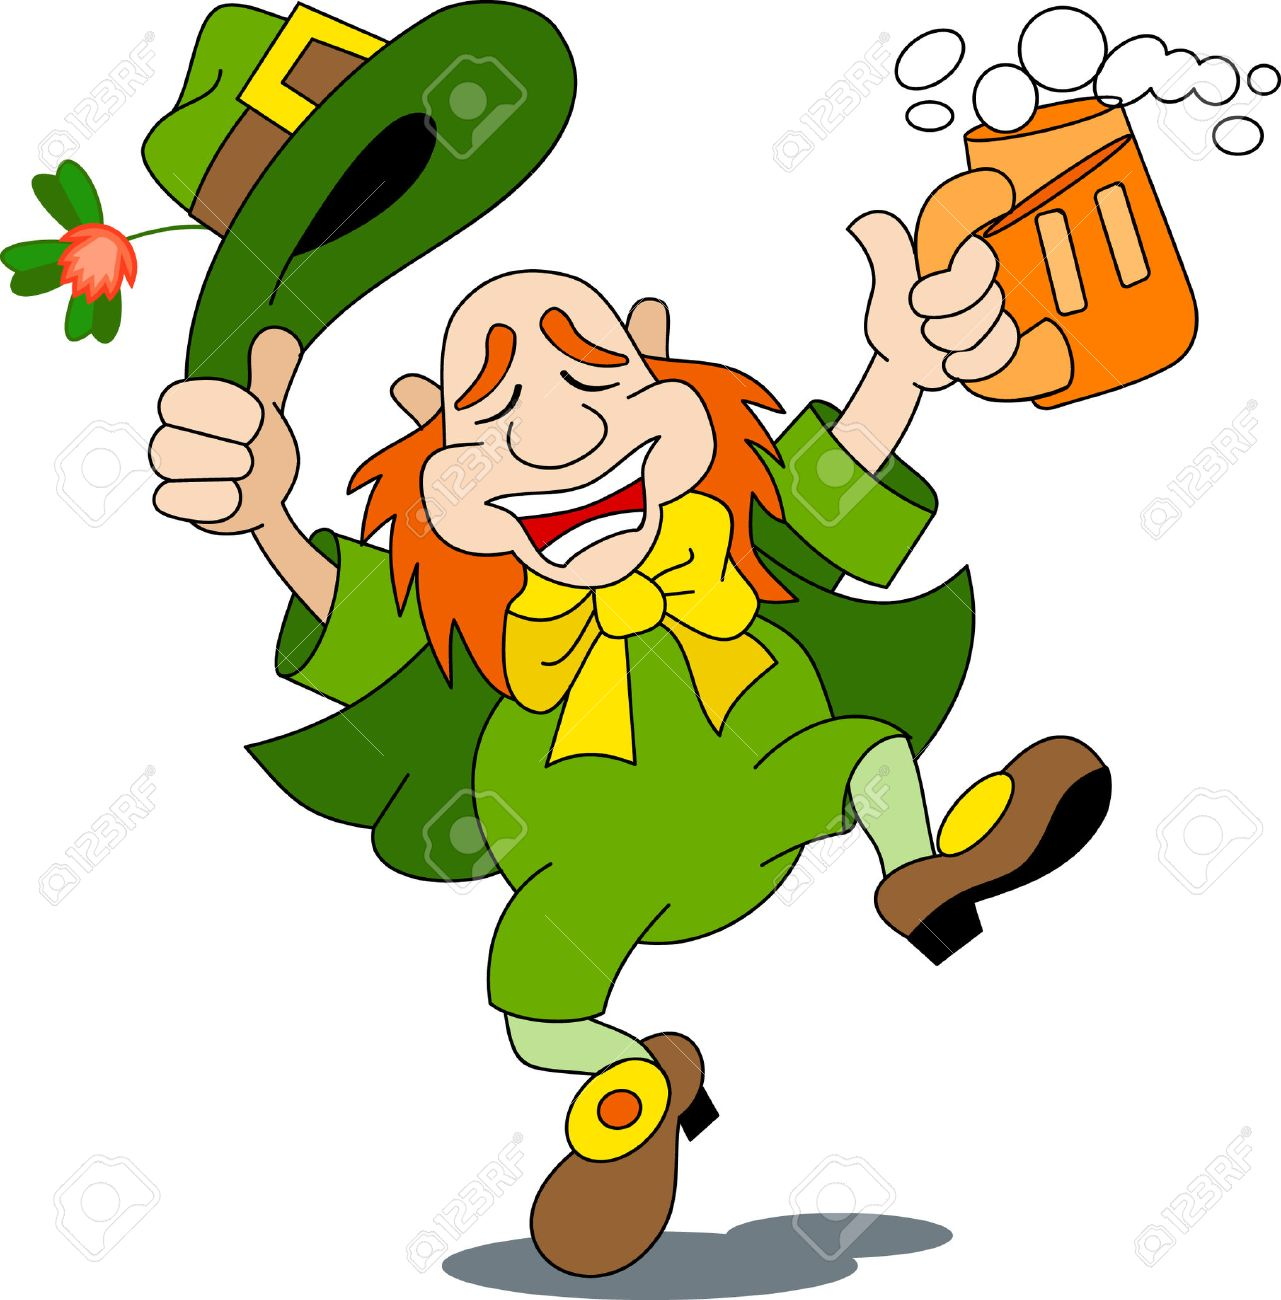 A leprechaun is dancing with beer.